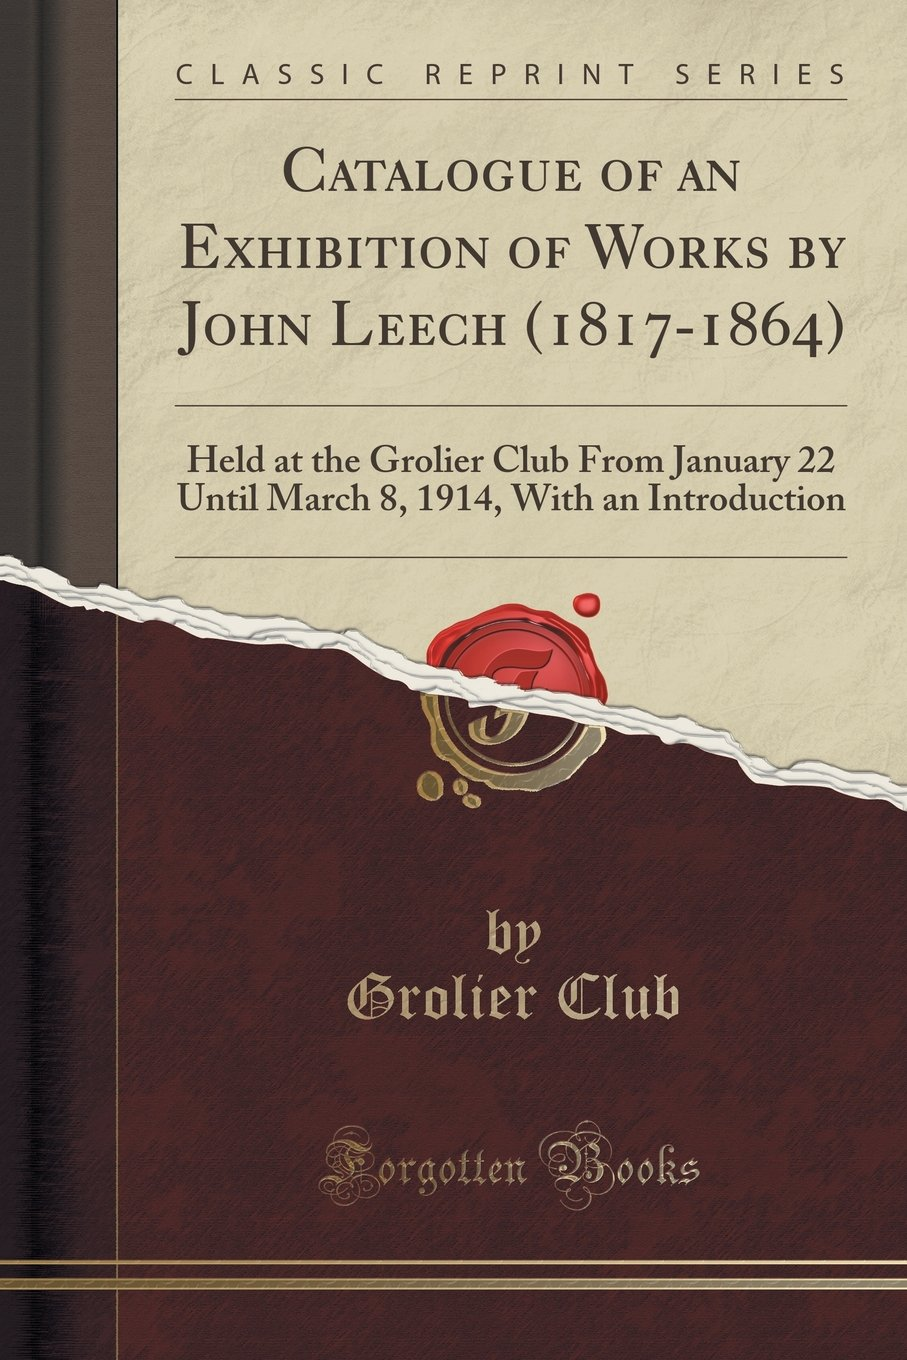 Download Catalogue of an Exhibition of Works by John Leech (1817-1864): Held at the Grolier Club From January 22 Until March 8, 1914, With an Introduction (Classic Reprint) pdf